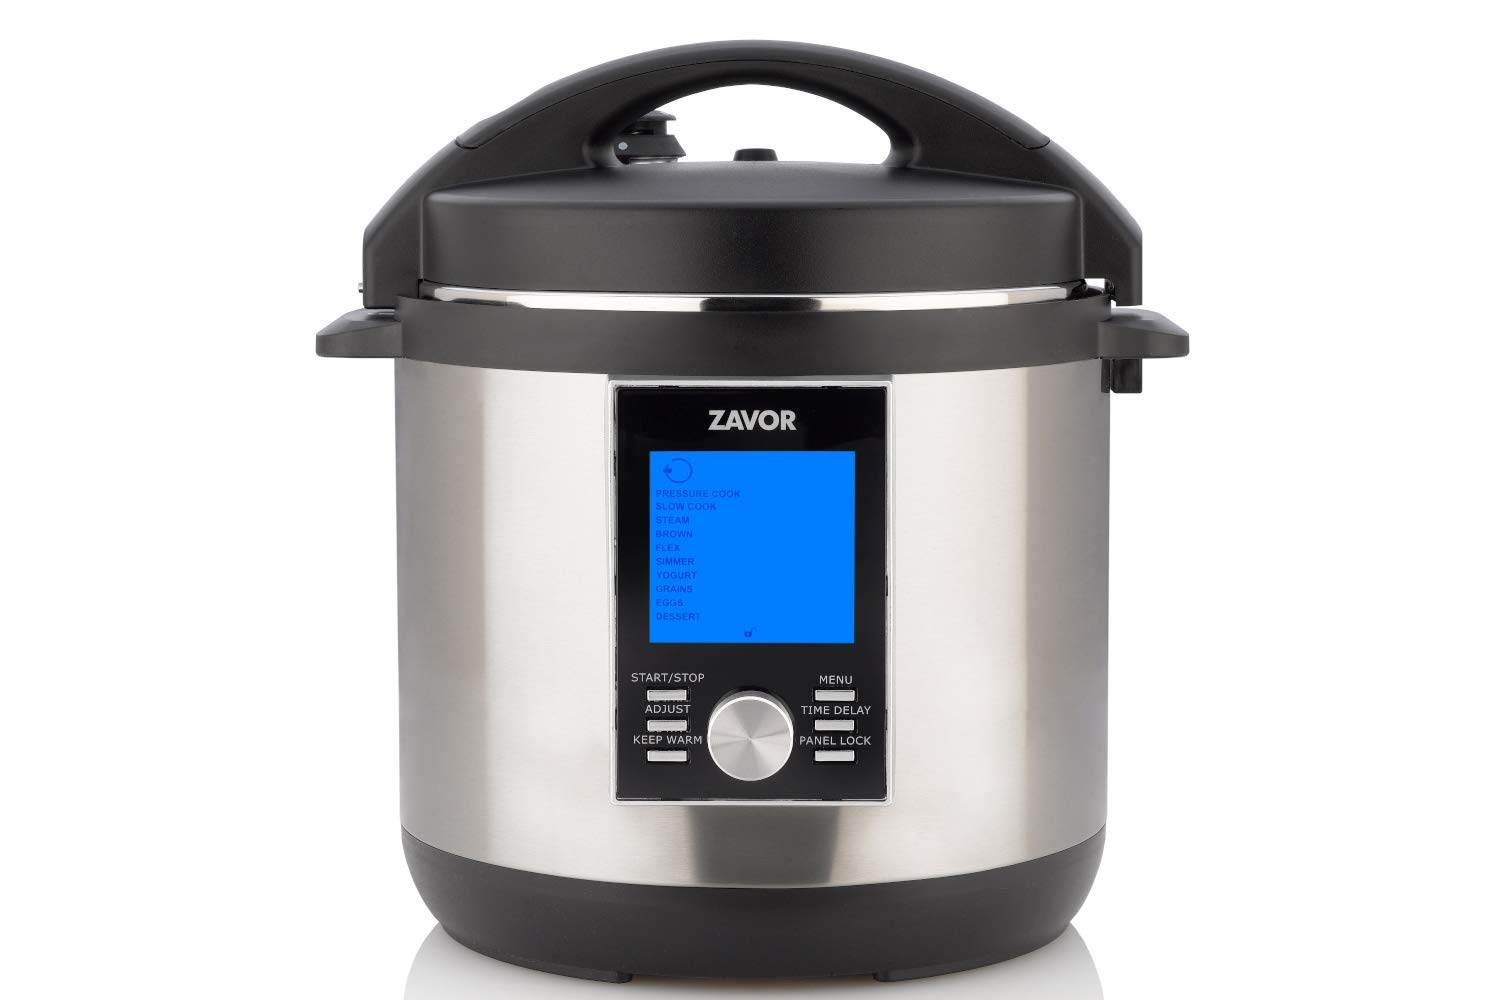 Zavor LUX LCD 6-Quart Programmable Electric Multi-Cooker with Multi-Cooker Perfection Cookbook by Zavor (Image #2)